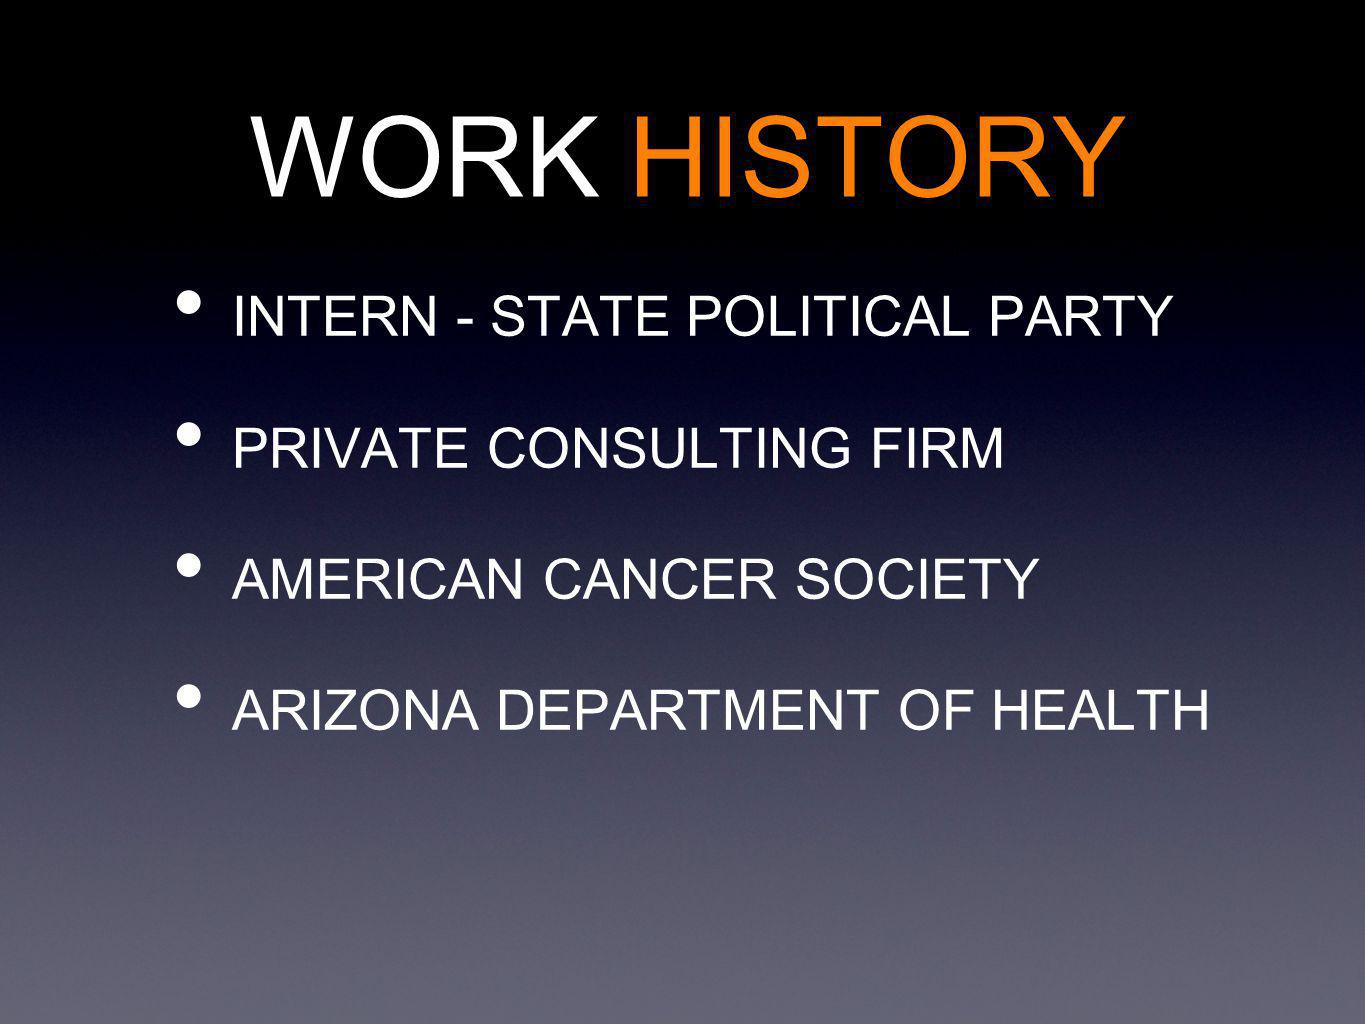 INTERN - STATE POLITICAL PARTY PRIVATE CONSULTING FIRM AMERICAN CANCER SOCIETY ARIZONA DEPARTMENT OF HEALTH WORK HISTORY